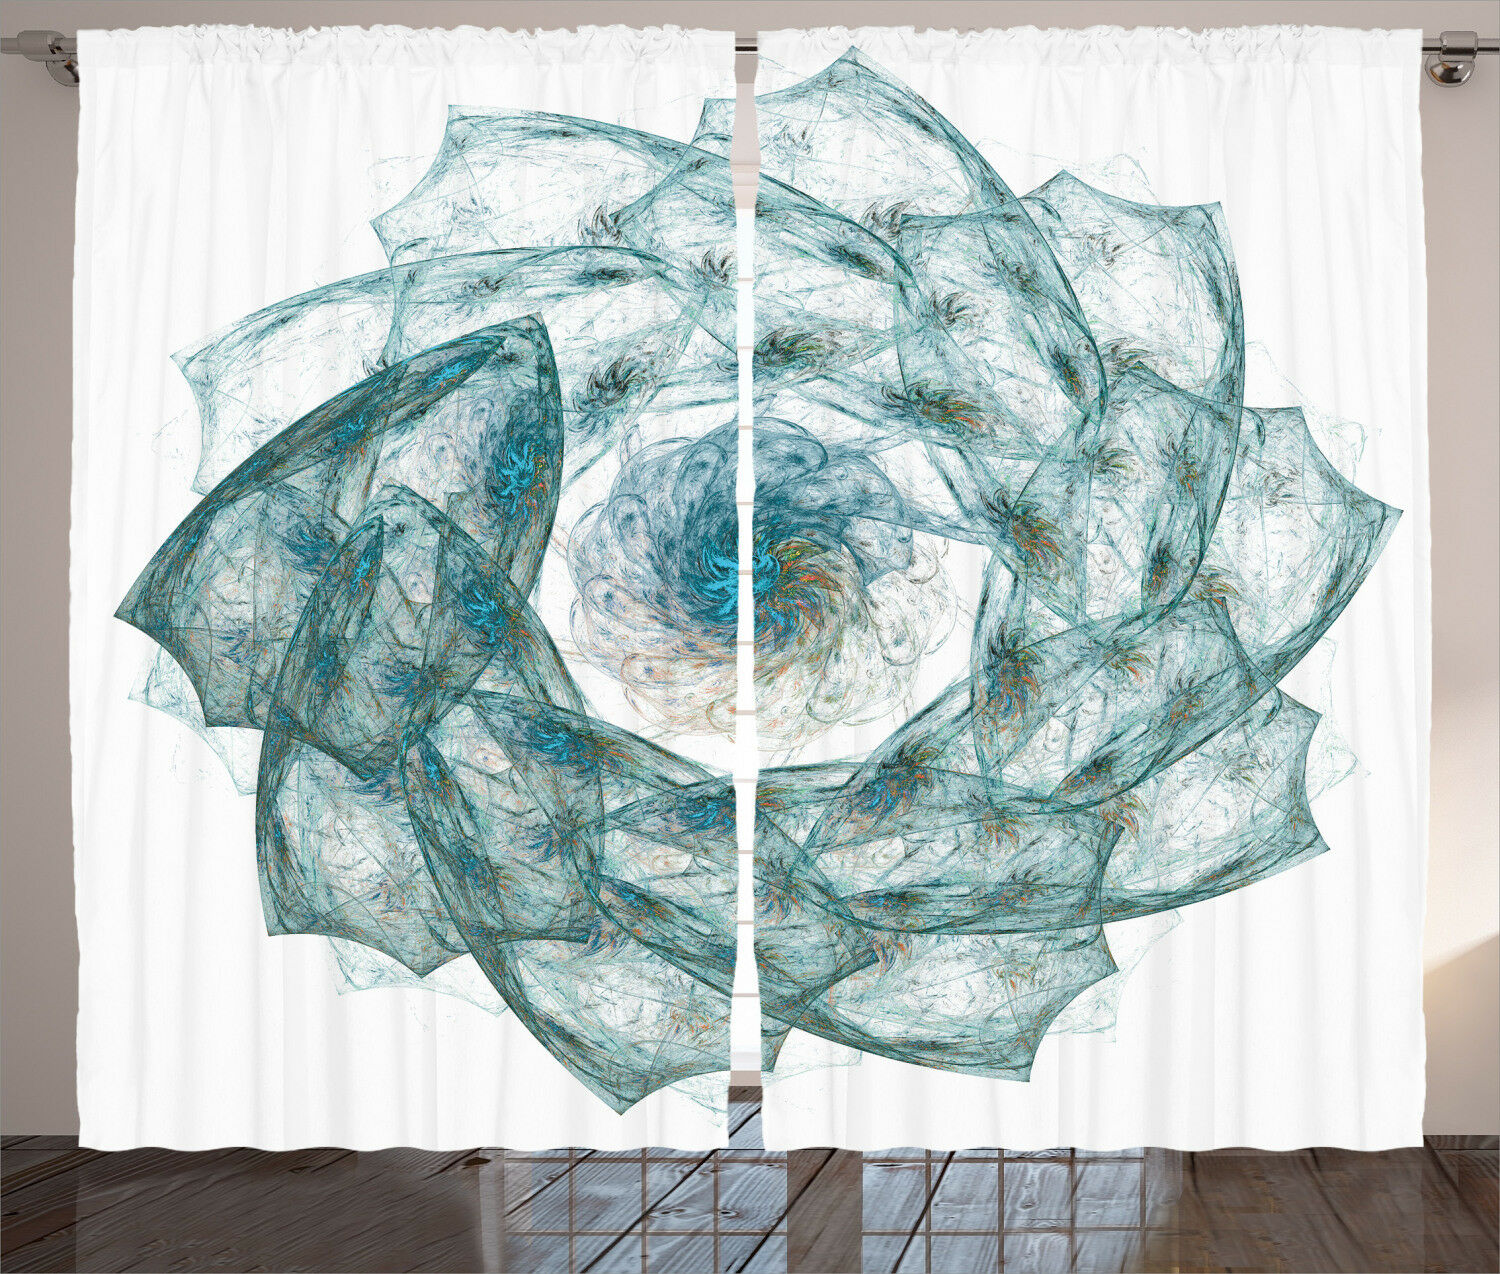 Teal Curtains Exquisite Flower Shaped Window Drapes 2 Panel Set 108x84 Inches